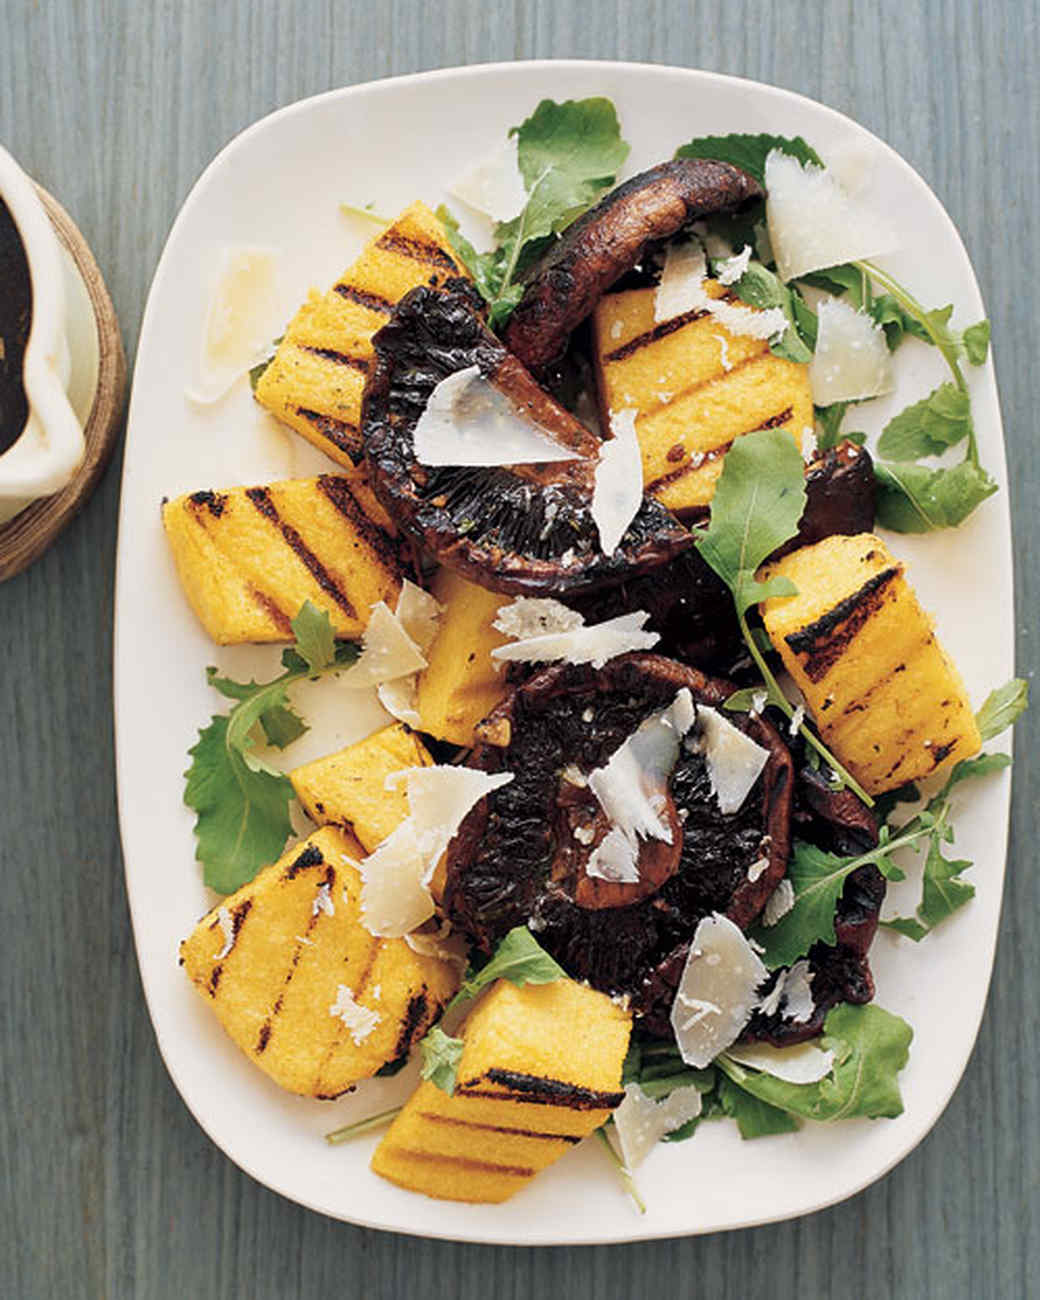 Grilled Polenta and Balsamic Mushrooms